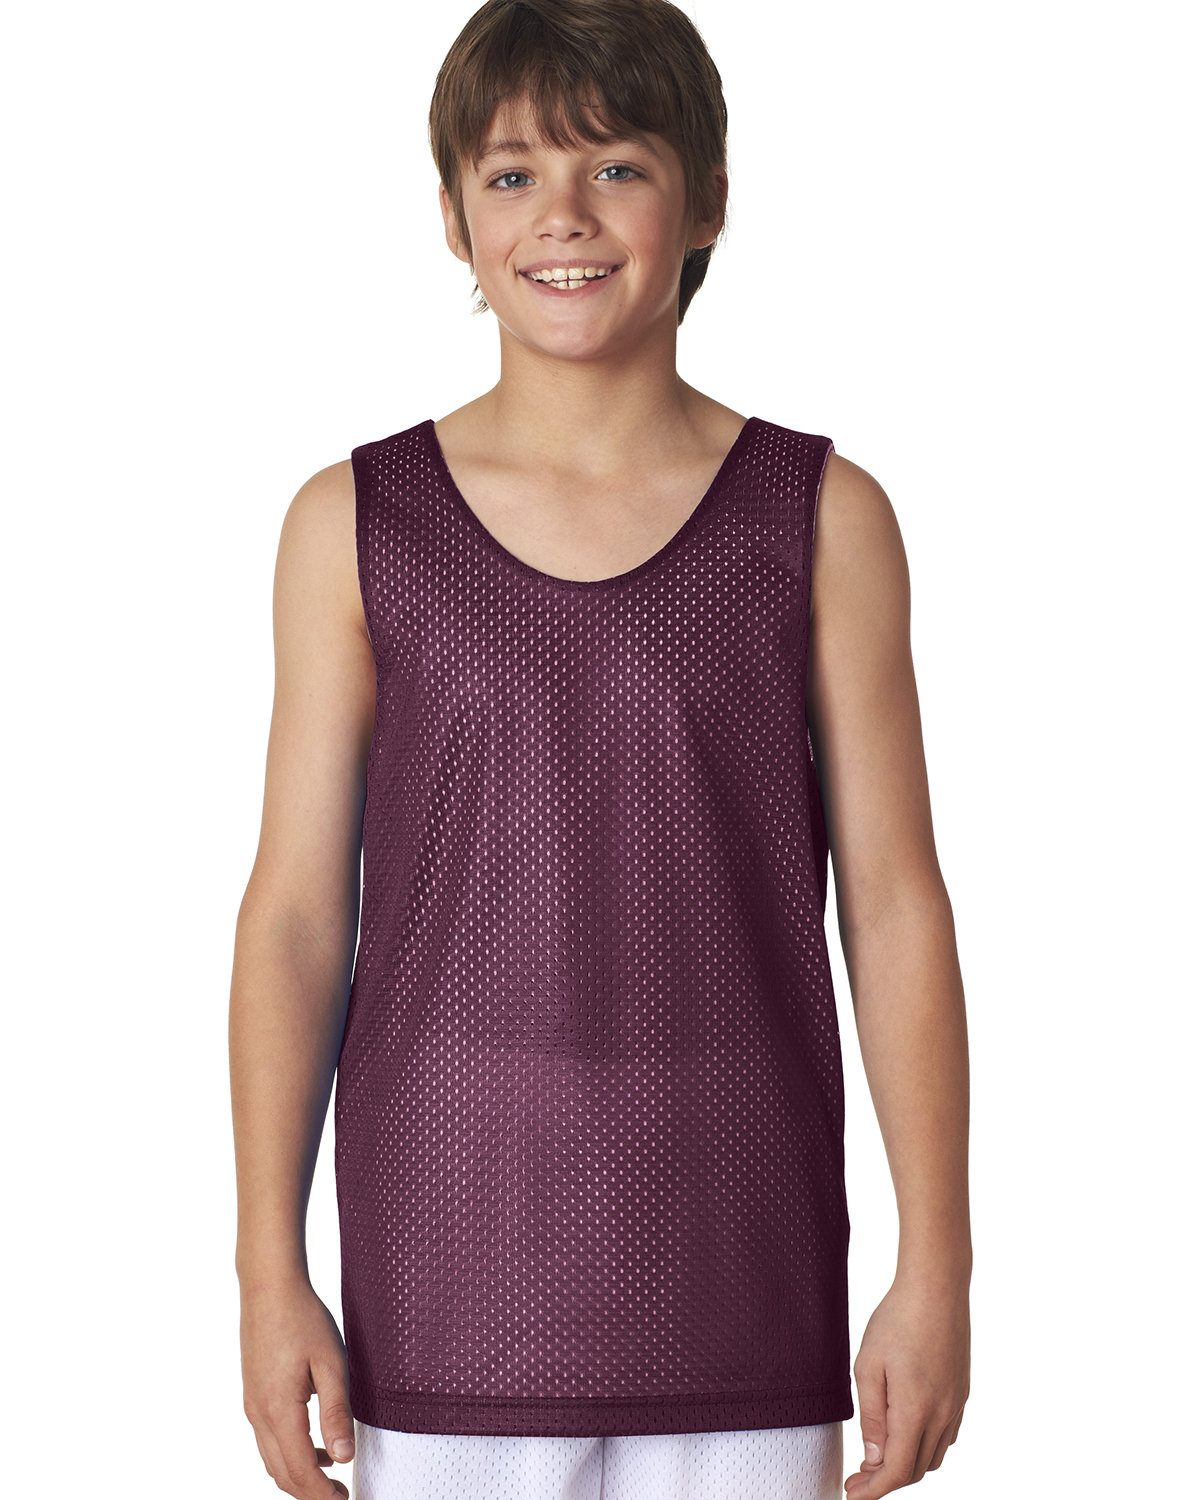 A4 Youth Reversible Mesh Tank MAROON/ WHITE